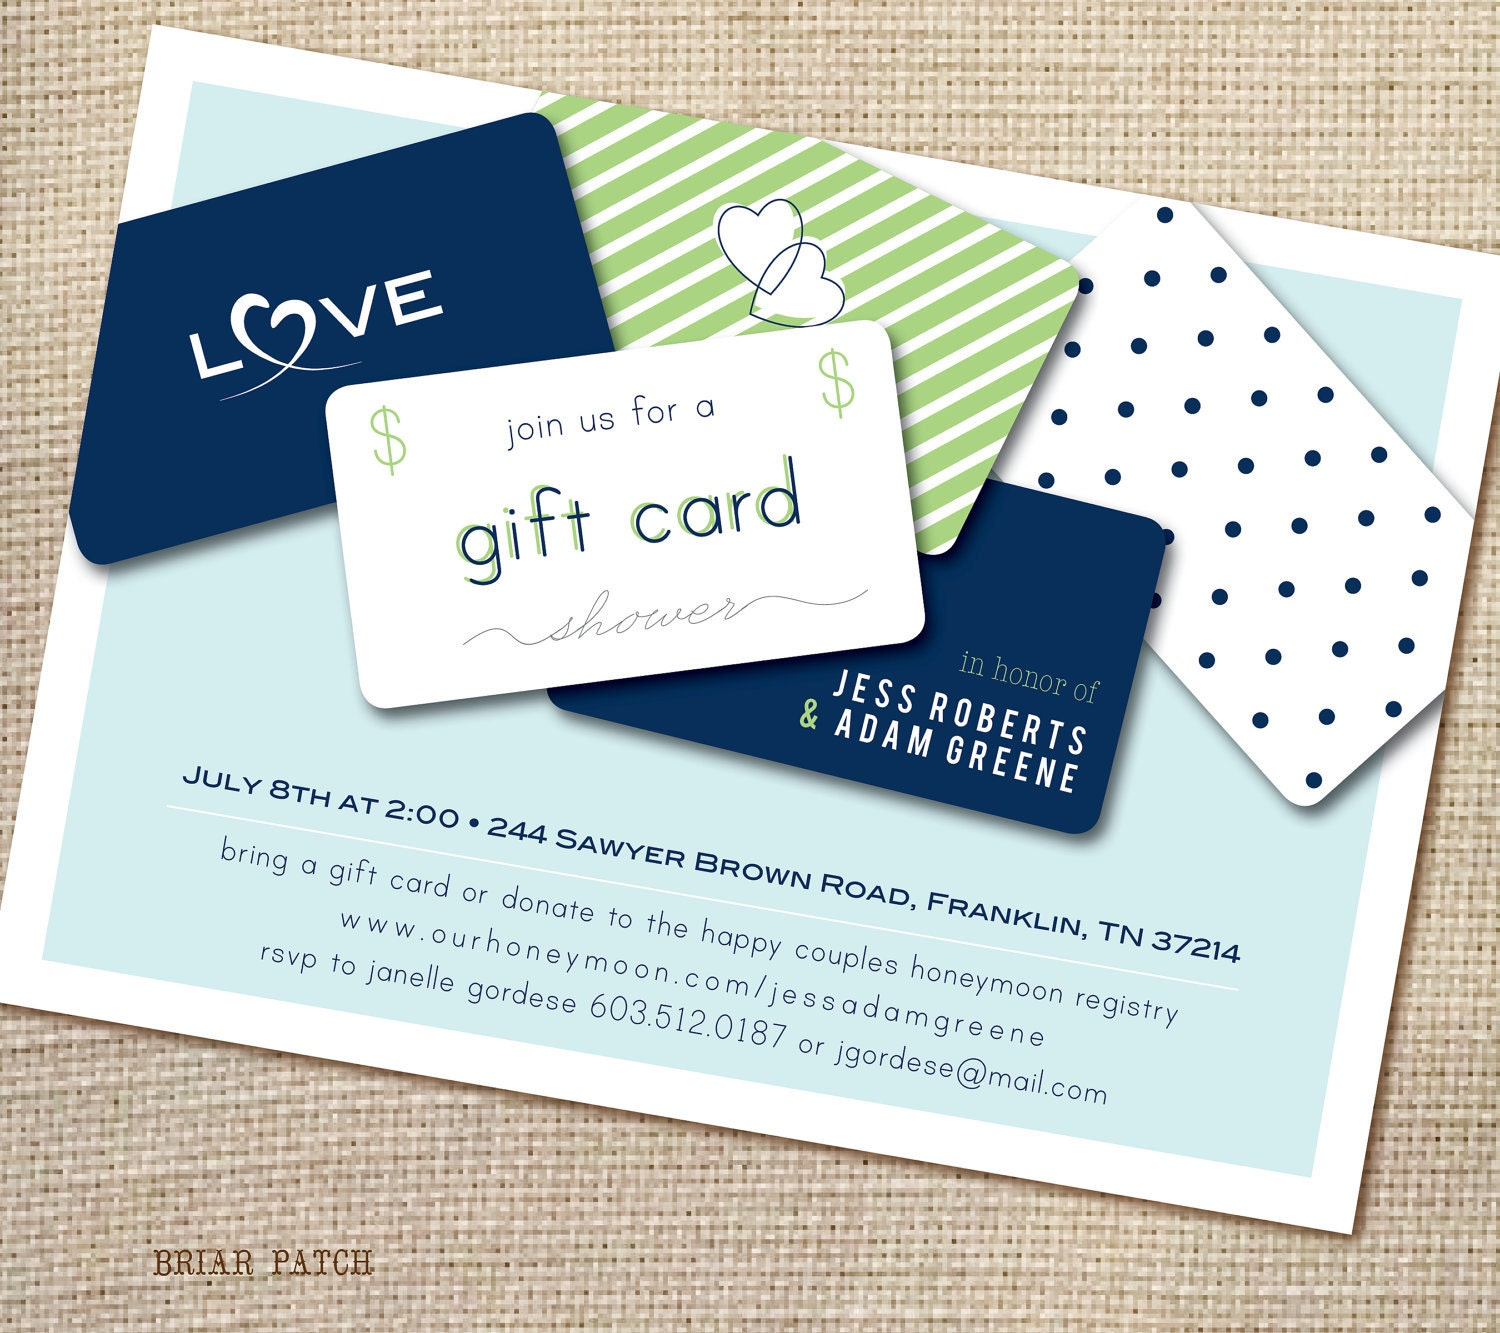 Wedding Shower Gift Card Verses : Delight & Decorum: Bridal Shower: Gift Card Q&A